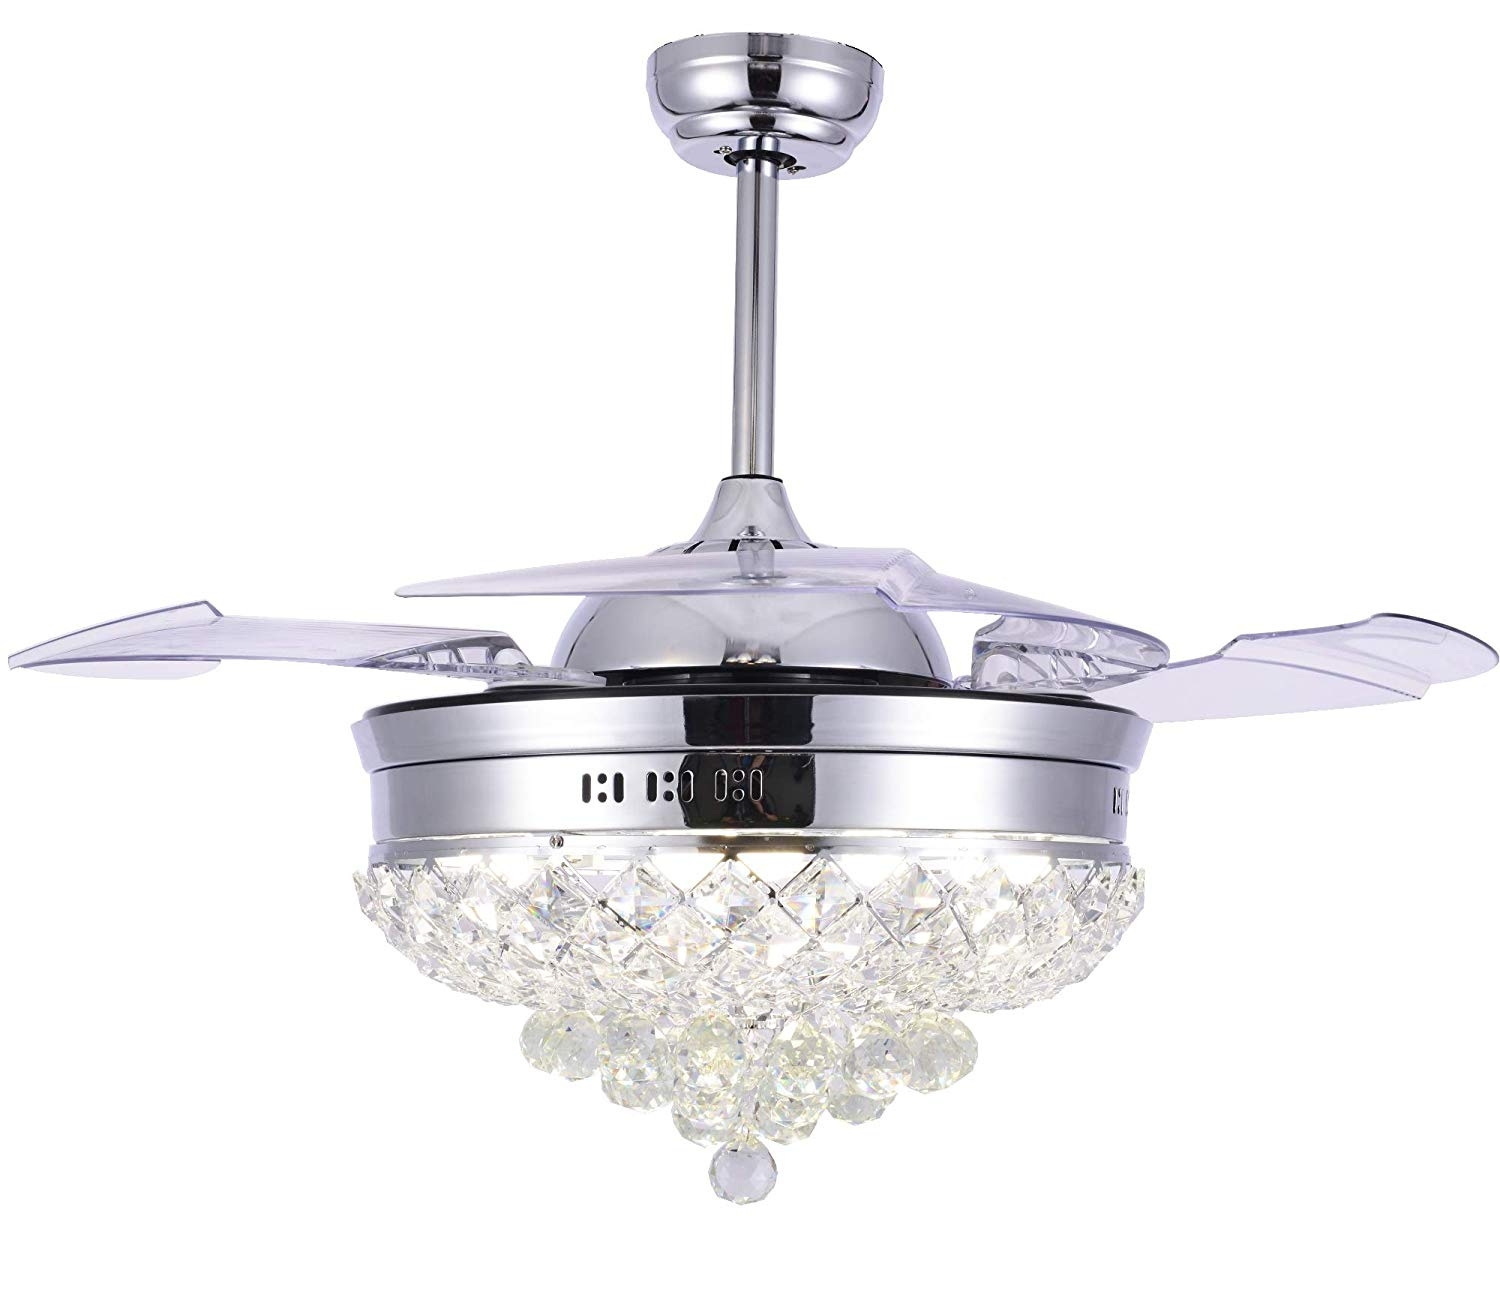 Get Quotations Bella Depot Fancy Retractable Ceiling Fan With Lights And Remote Control 42 Crystal Chandelier